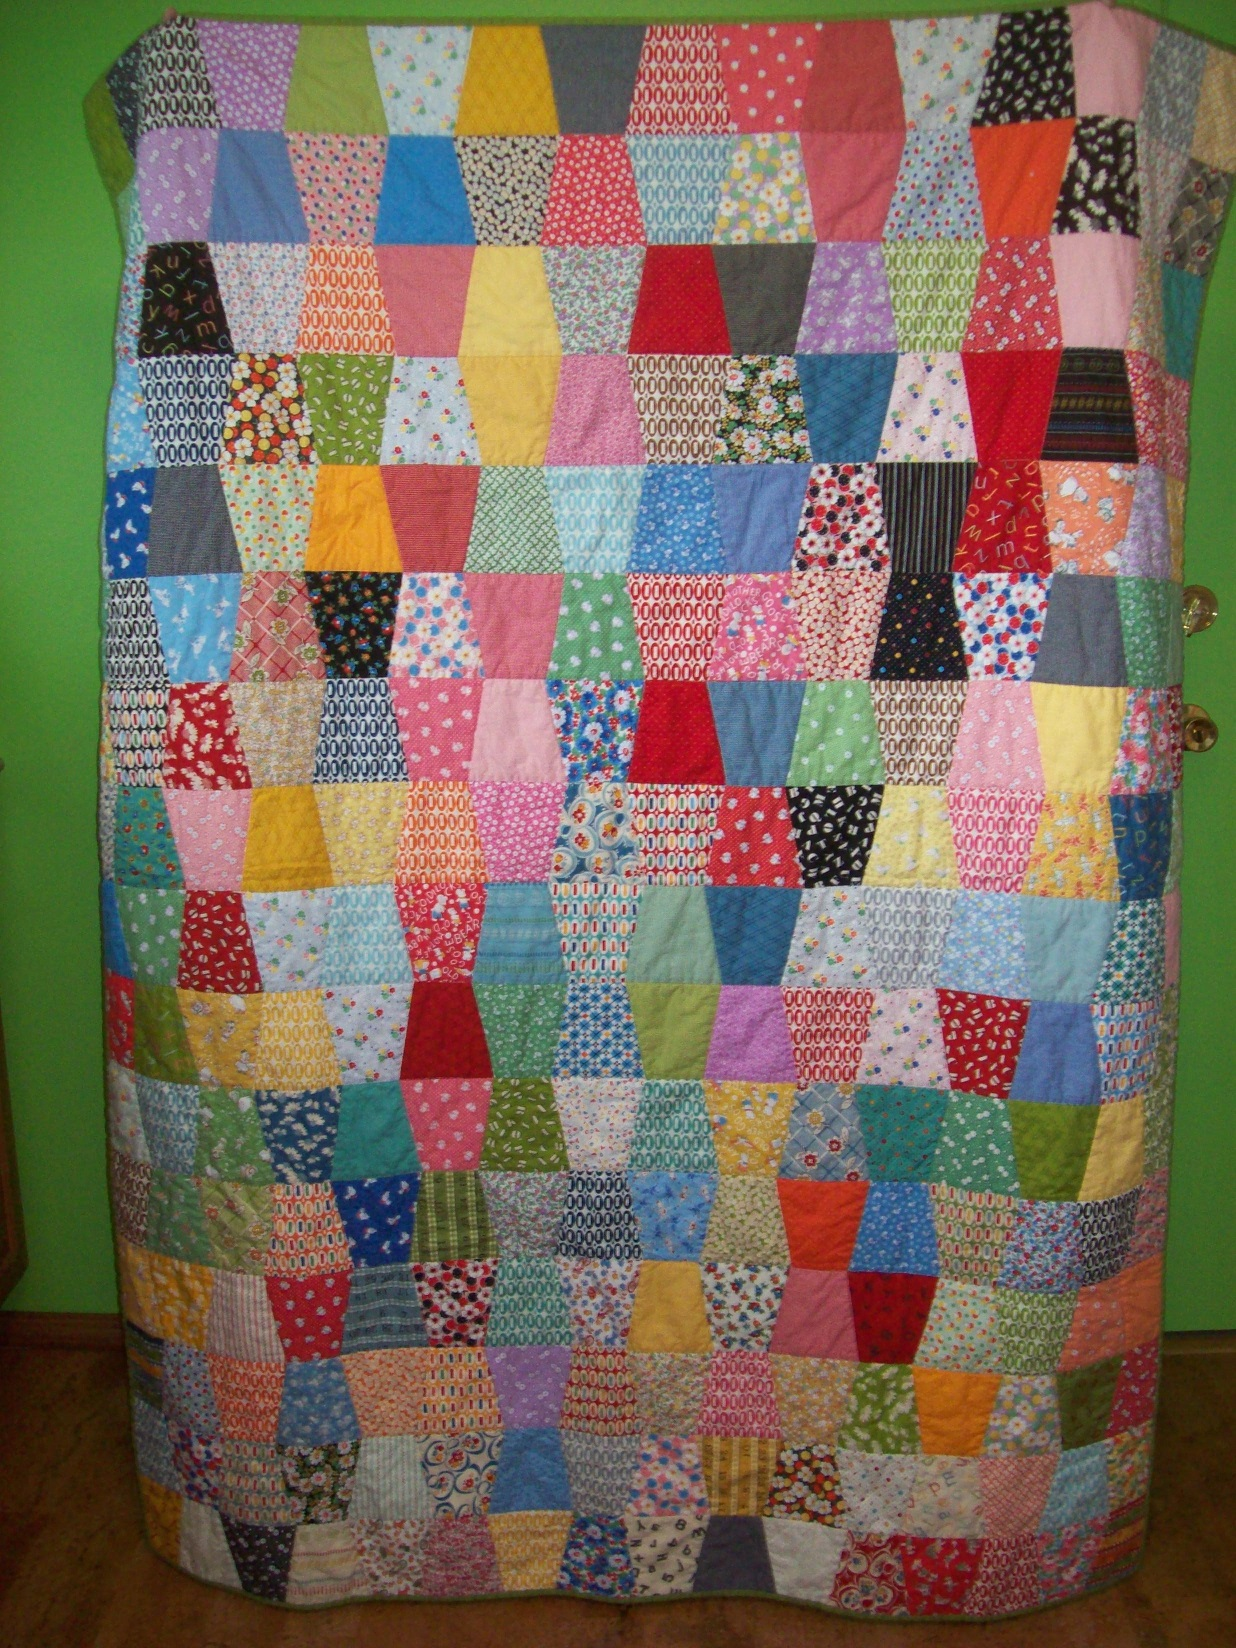 Name:  Quilted Vintage Reproduction Tumbler quilt 4-2013 sm.JPG